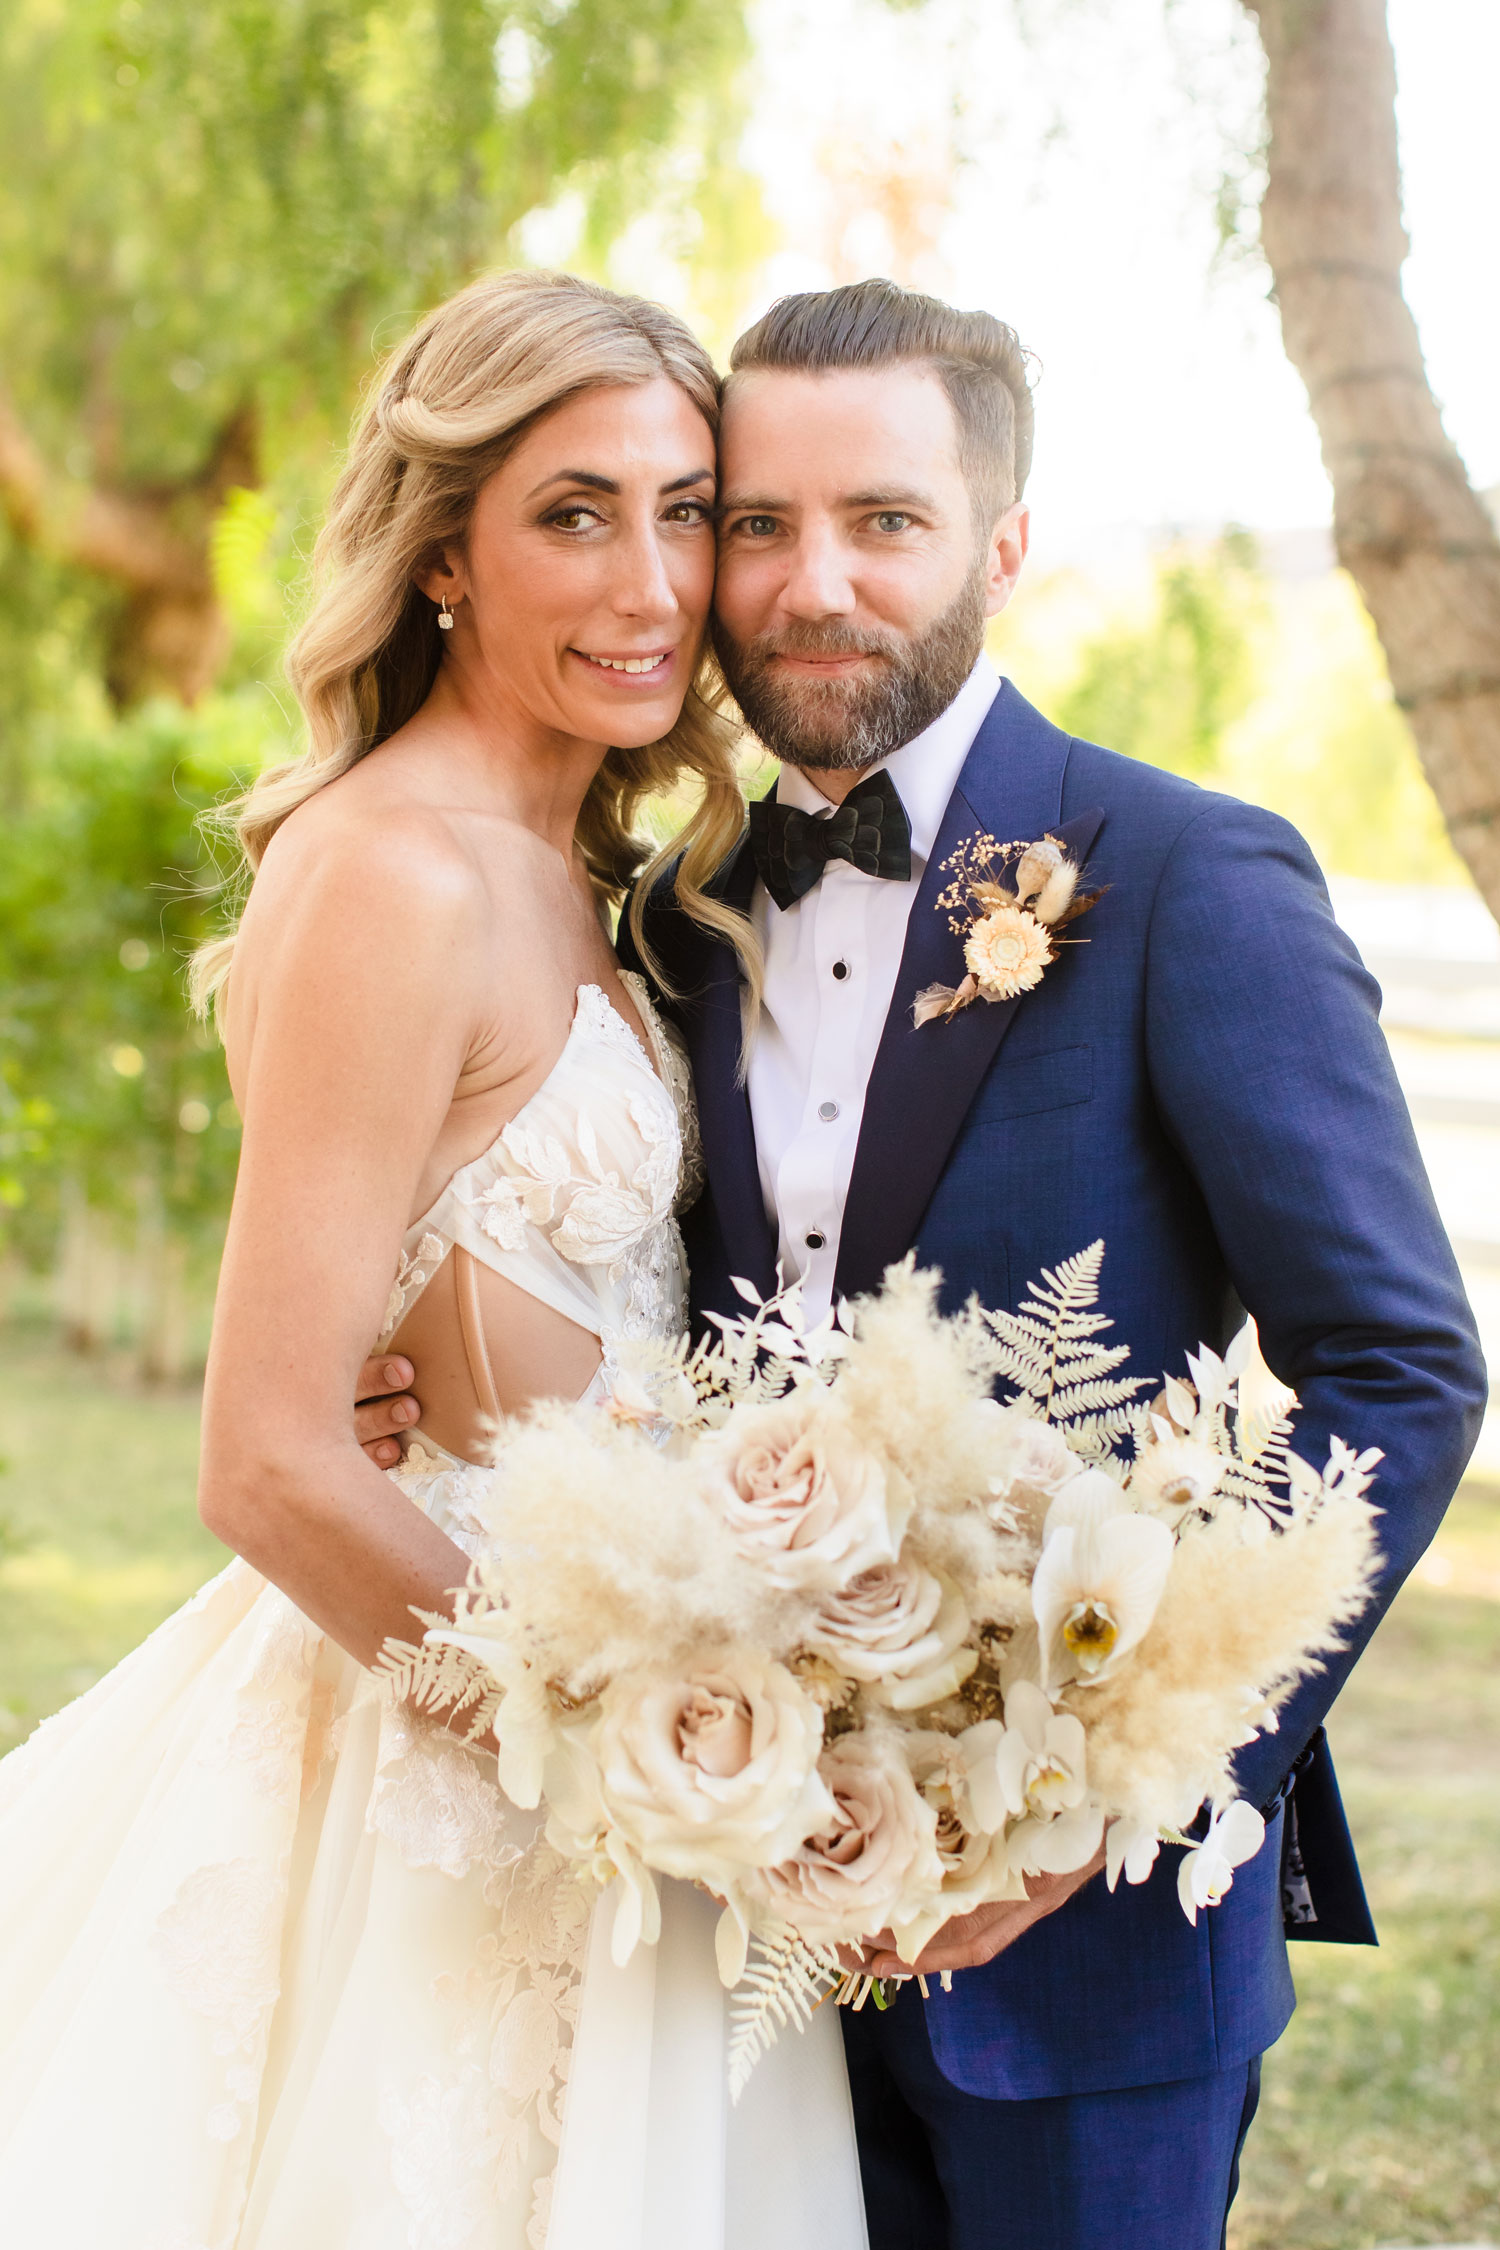 Top Chef Marcel Vigneron and Lauren Rae Levy real wedding planned by Tessa Lyn Events bride and groom portrait